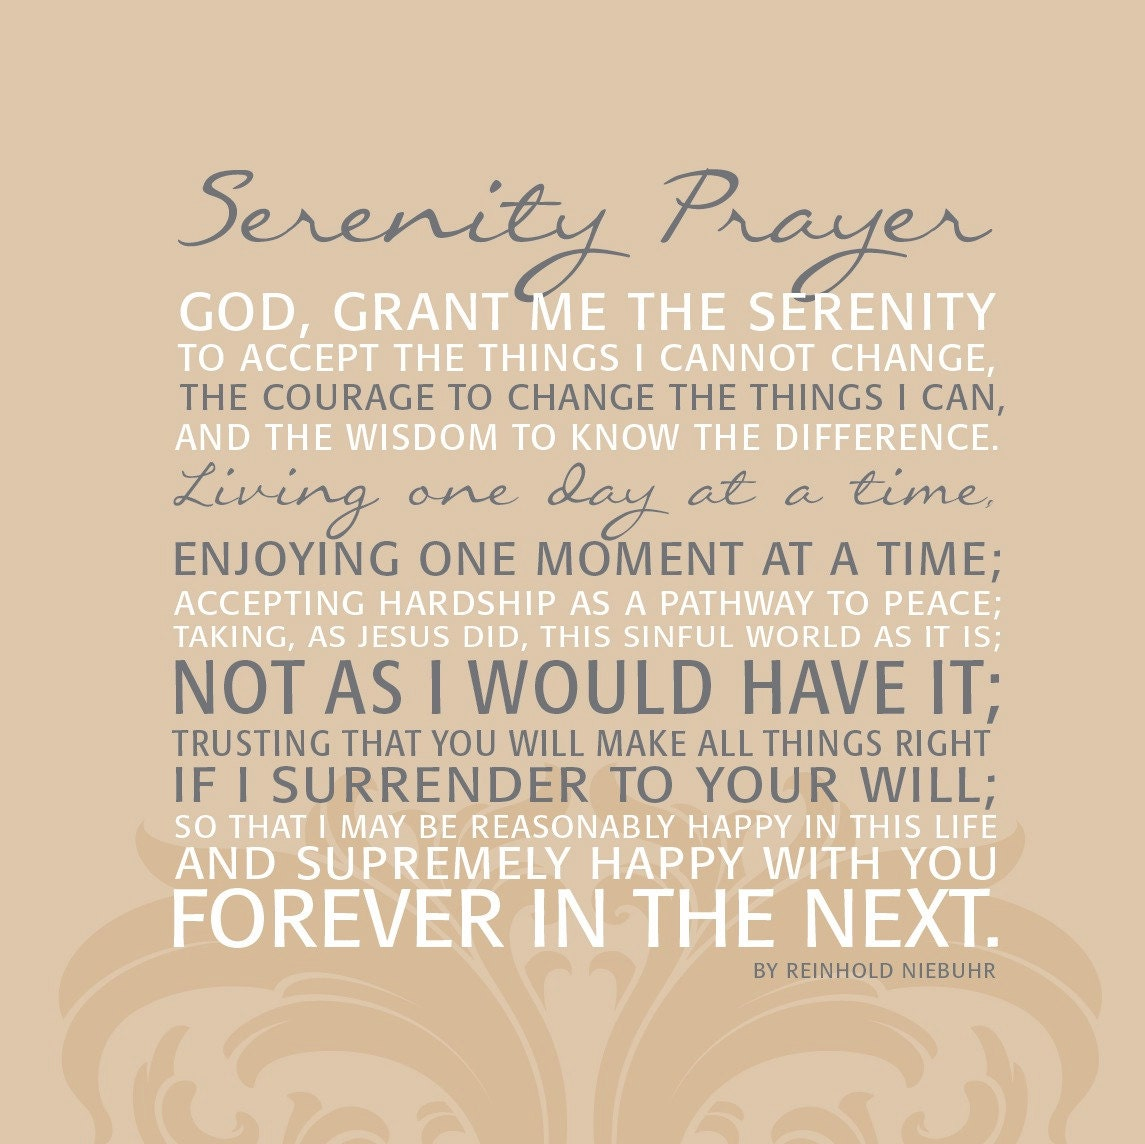 serenity prayer full text